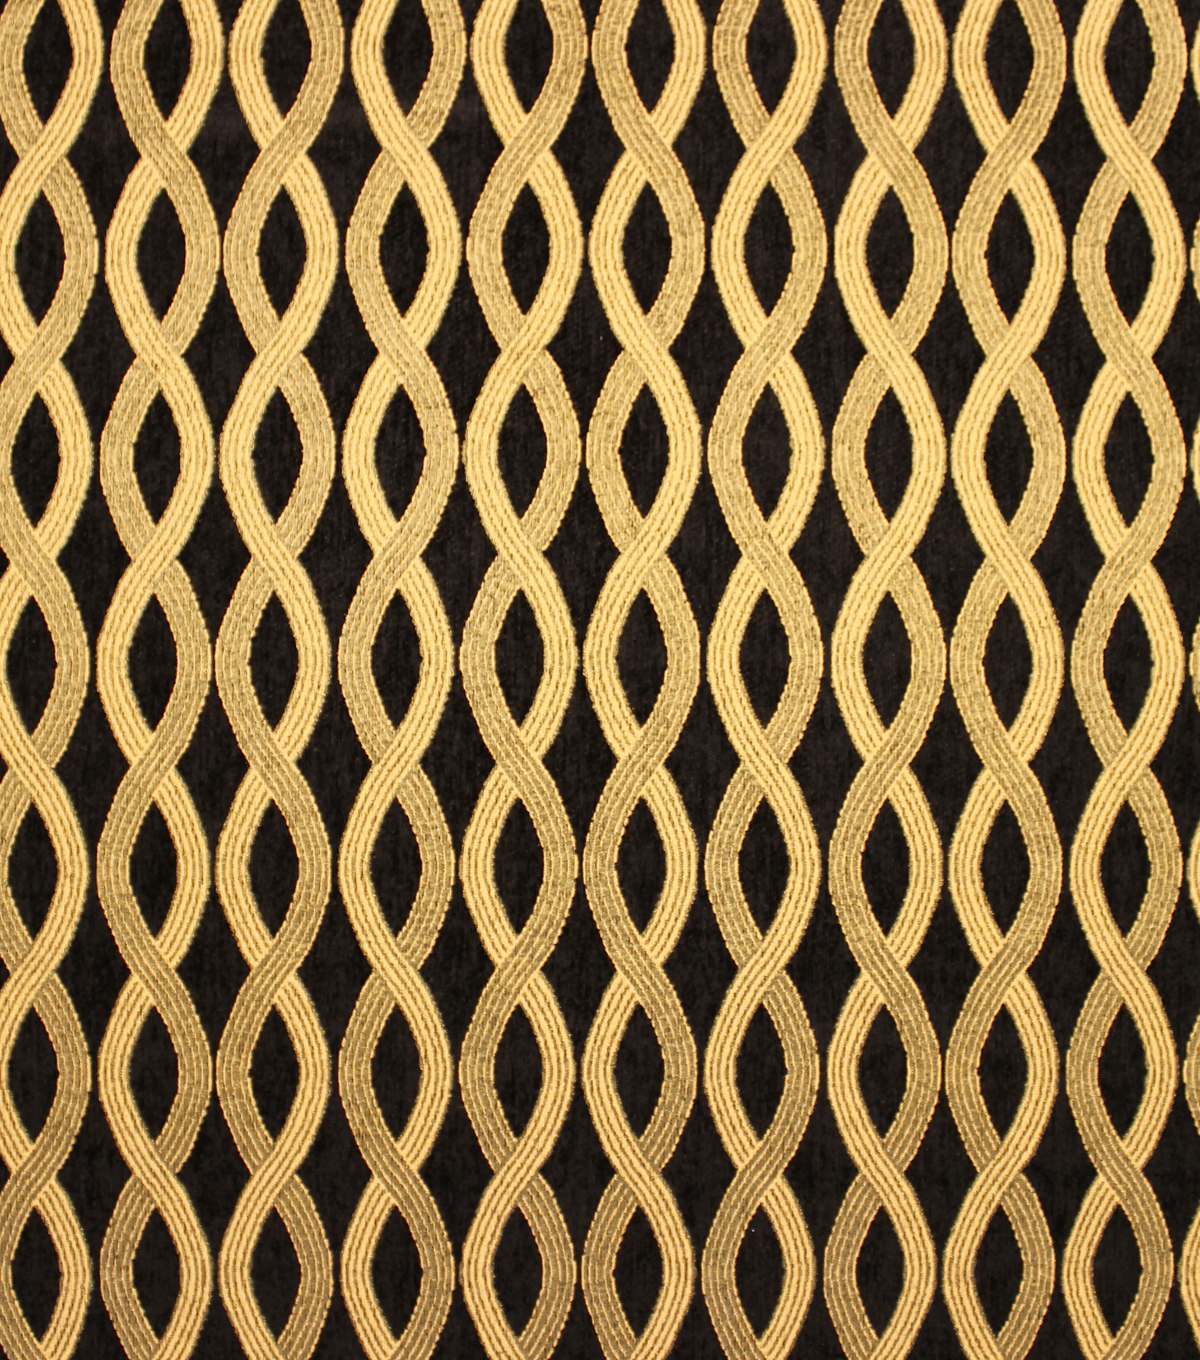 Home Decor 8\u0022x8\u0022 Fabric Swatch-Upholstery Fabric Barrow M6751-5983 Tigereye